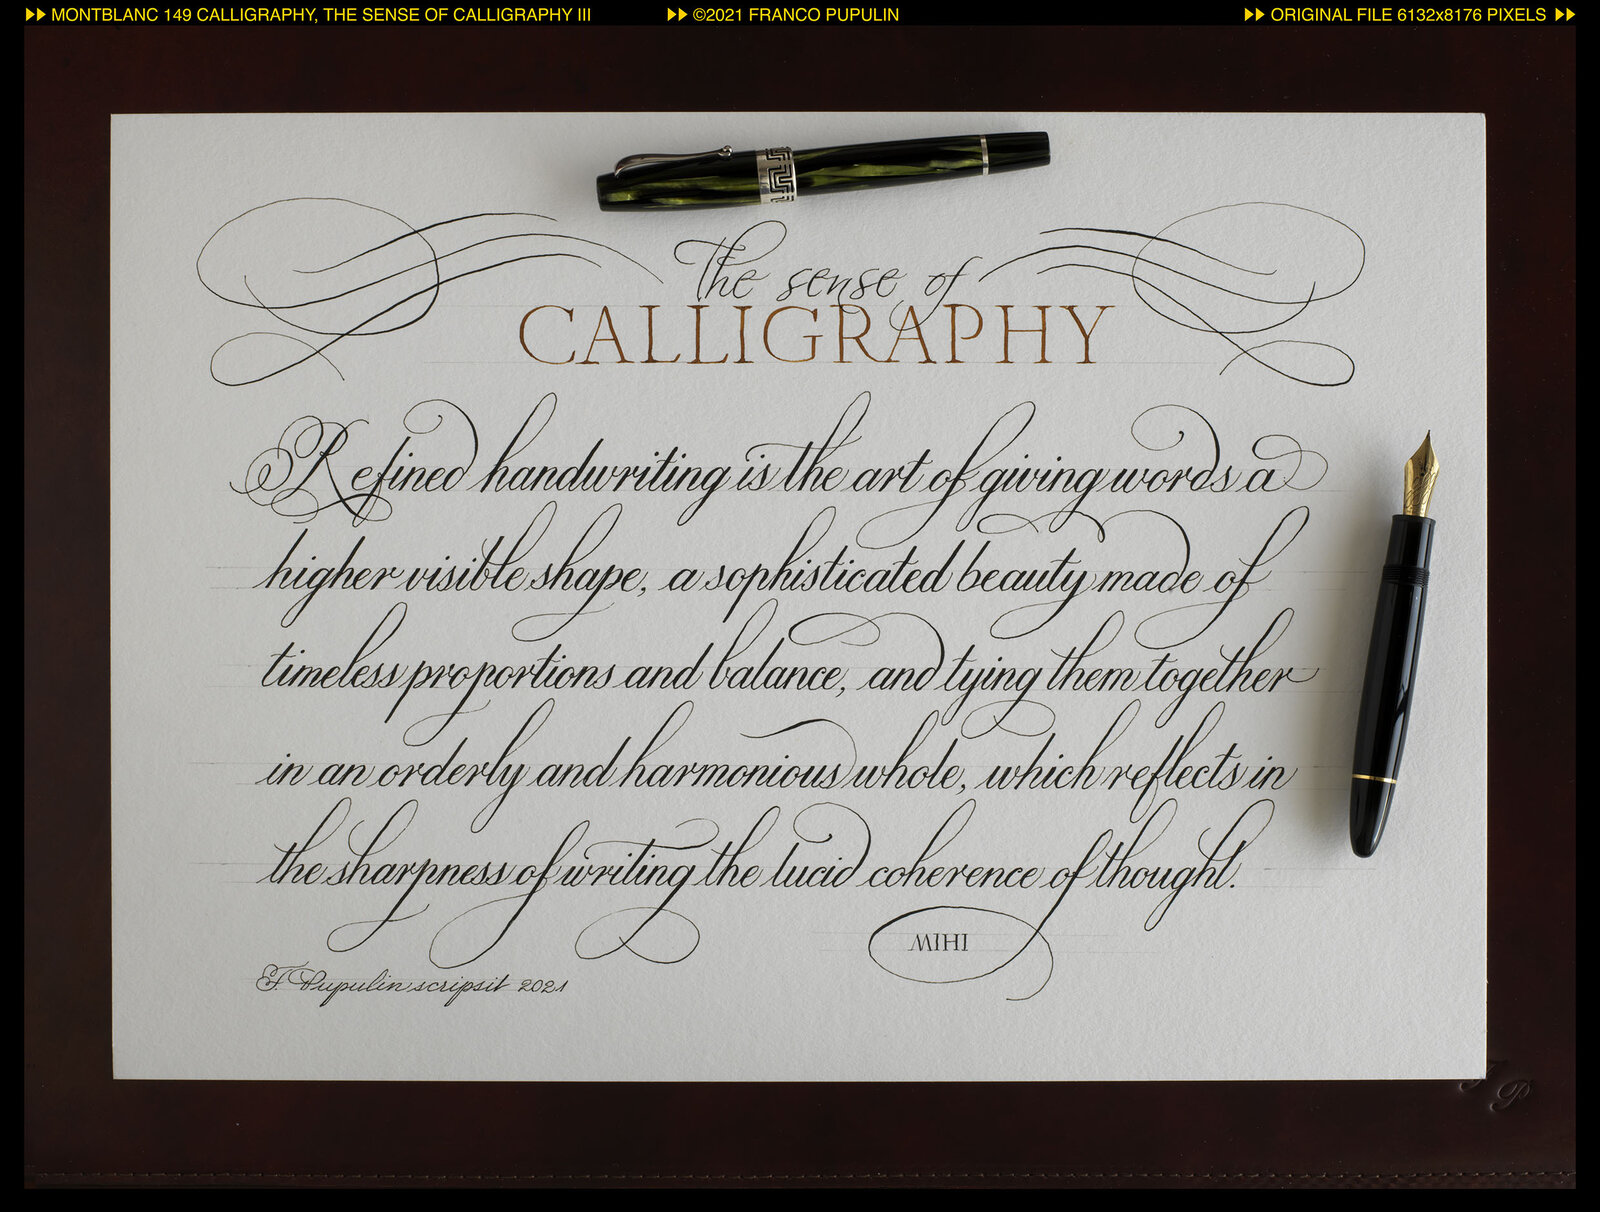 Montblanc 149 Calligraphy, The sense of Calligraphy III (with pens) ©FP.jpg